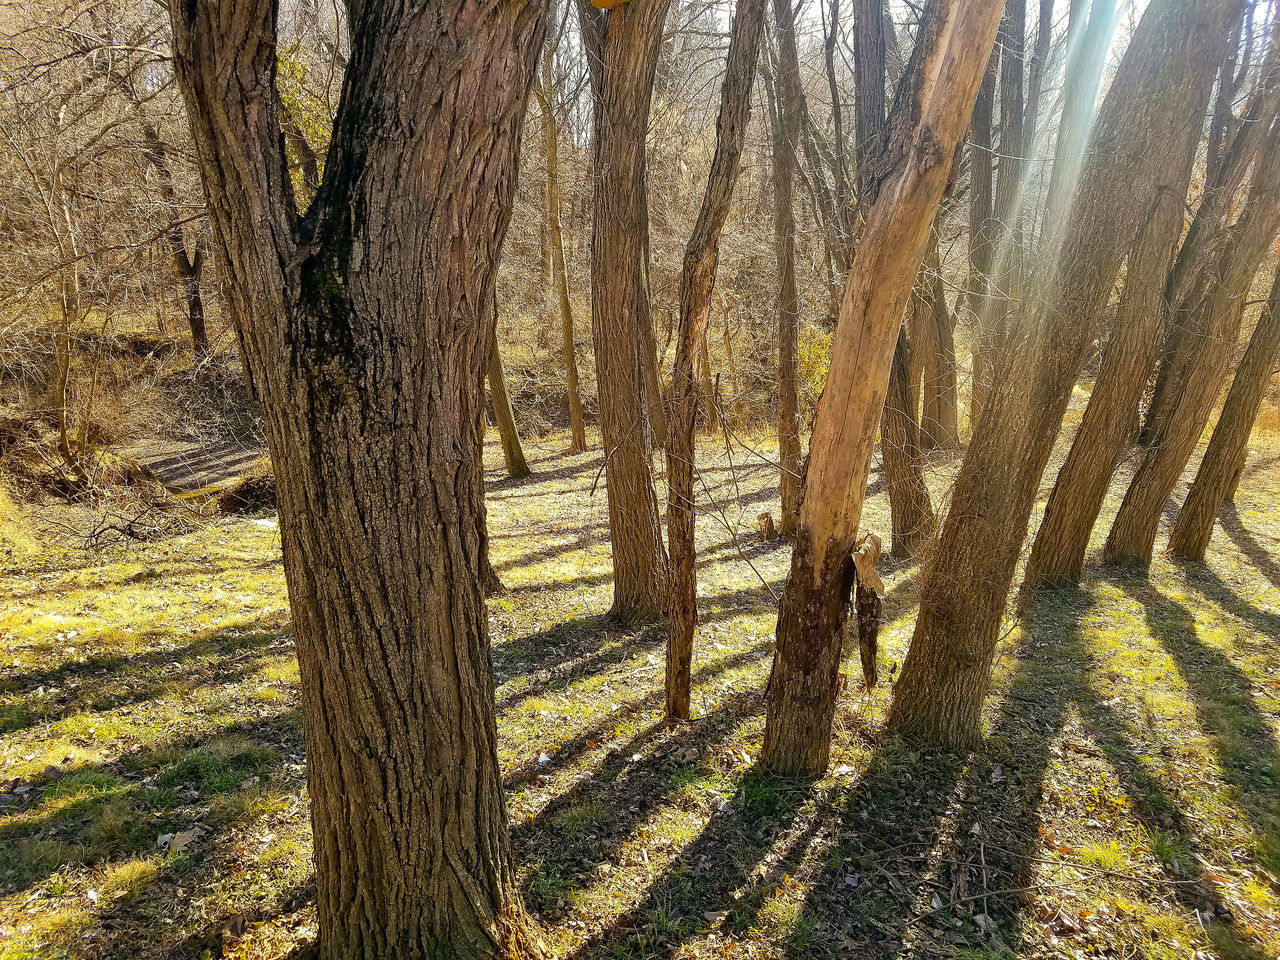 Backyard trees Backgrounds No People Full Frame Nature Beauty In Nature Outdoors Day Samsung Galaxy S7 Edge Eye4photography  Sunlight Sunshafts Shadow And Light Grass Tranquility Tree Trees In Winter